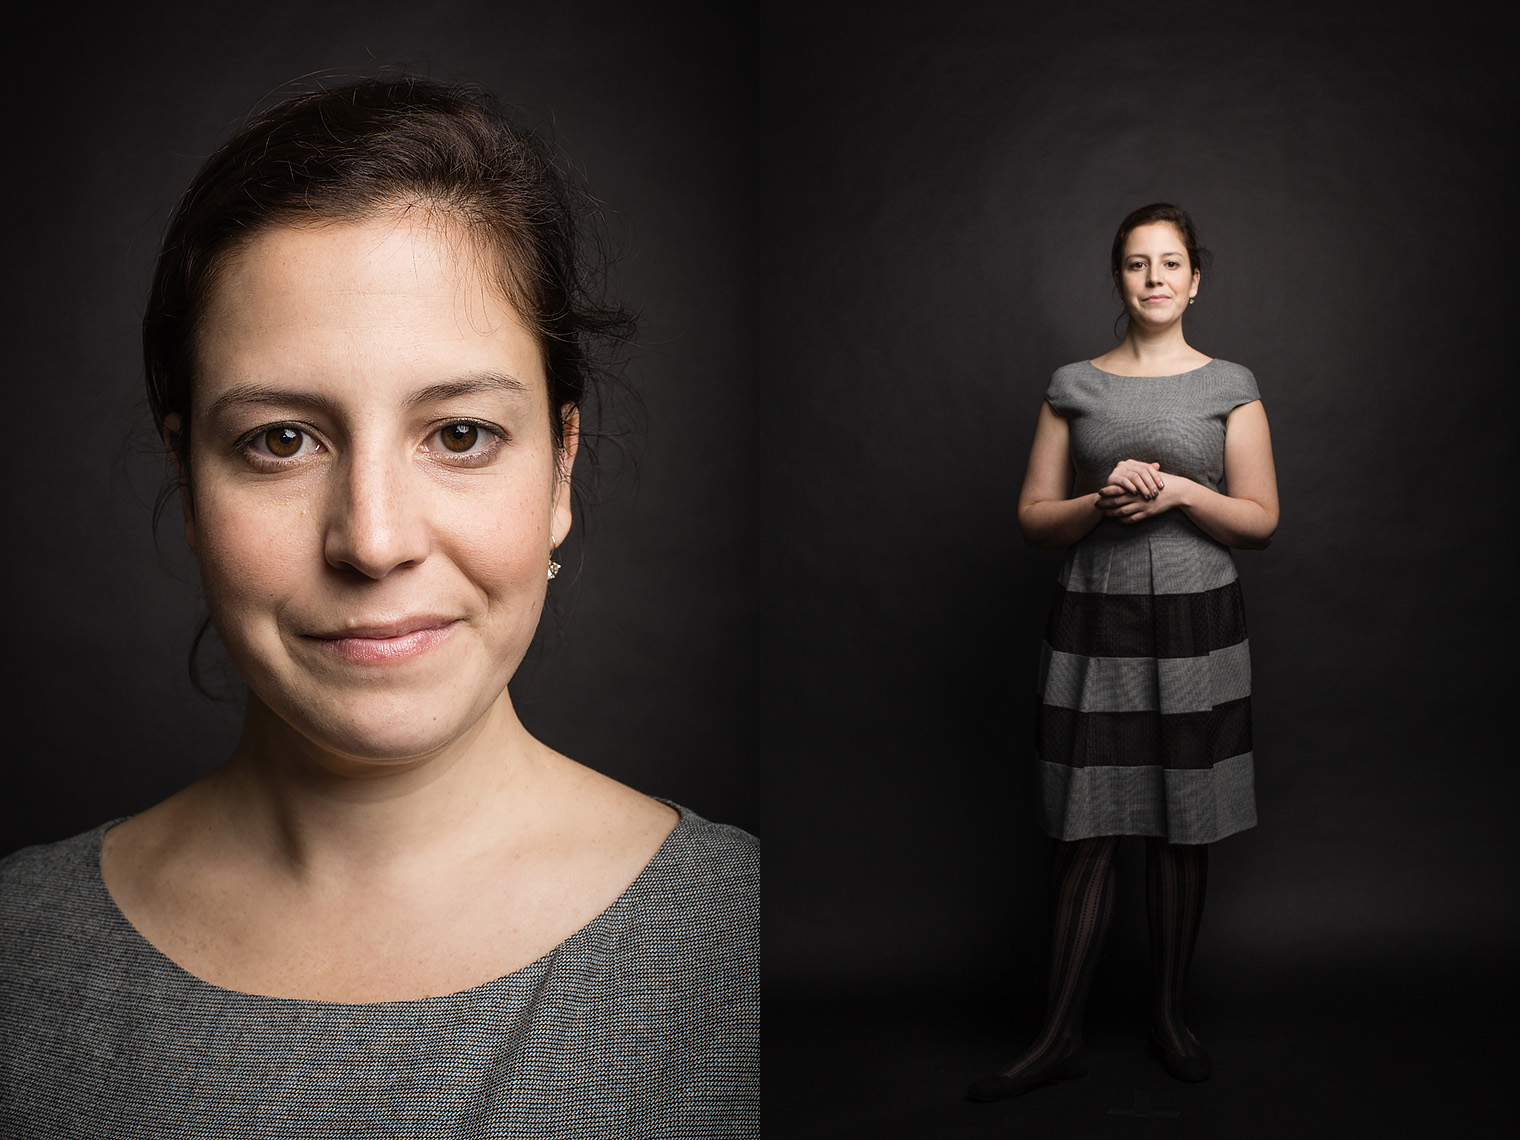 ELISE STEFANIK (NY 21ST, R) - Photographed for Politico  • Jason Grow Photography